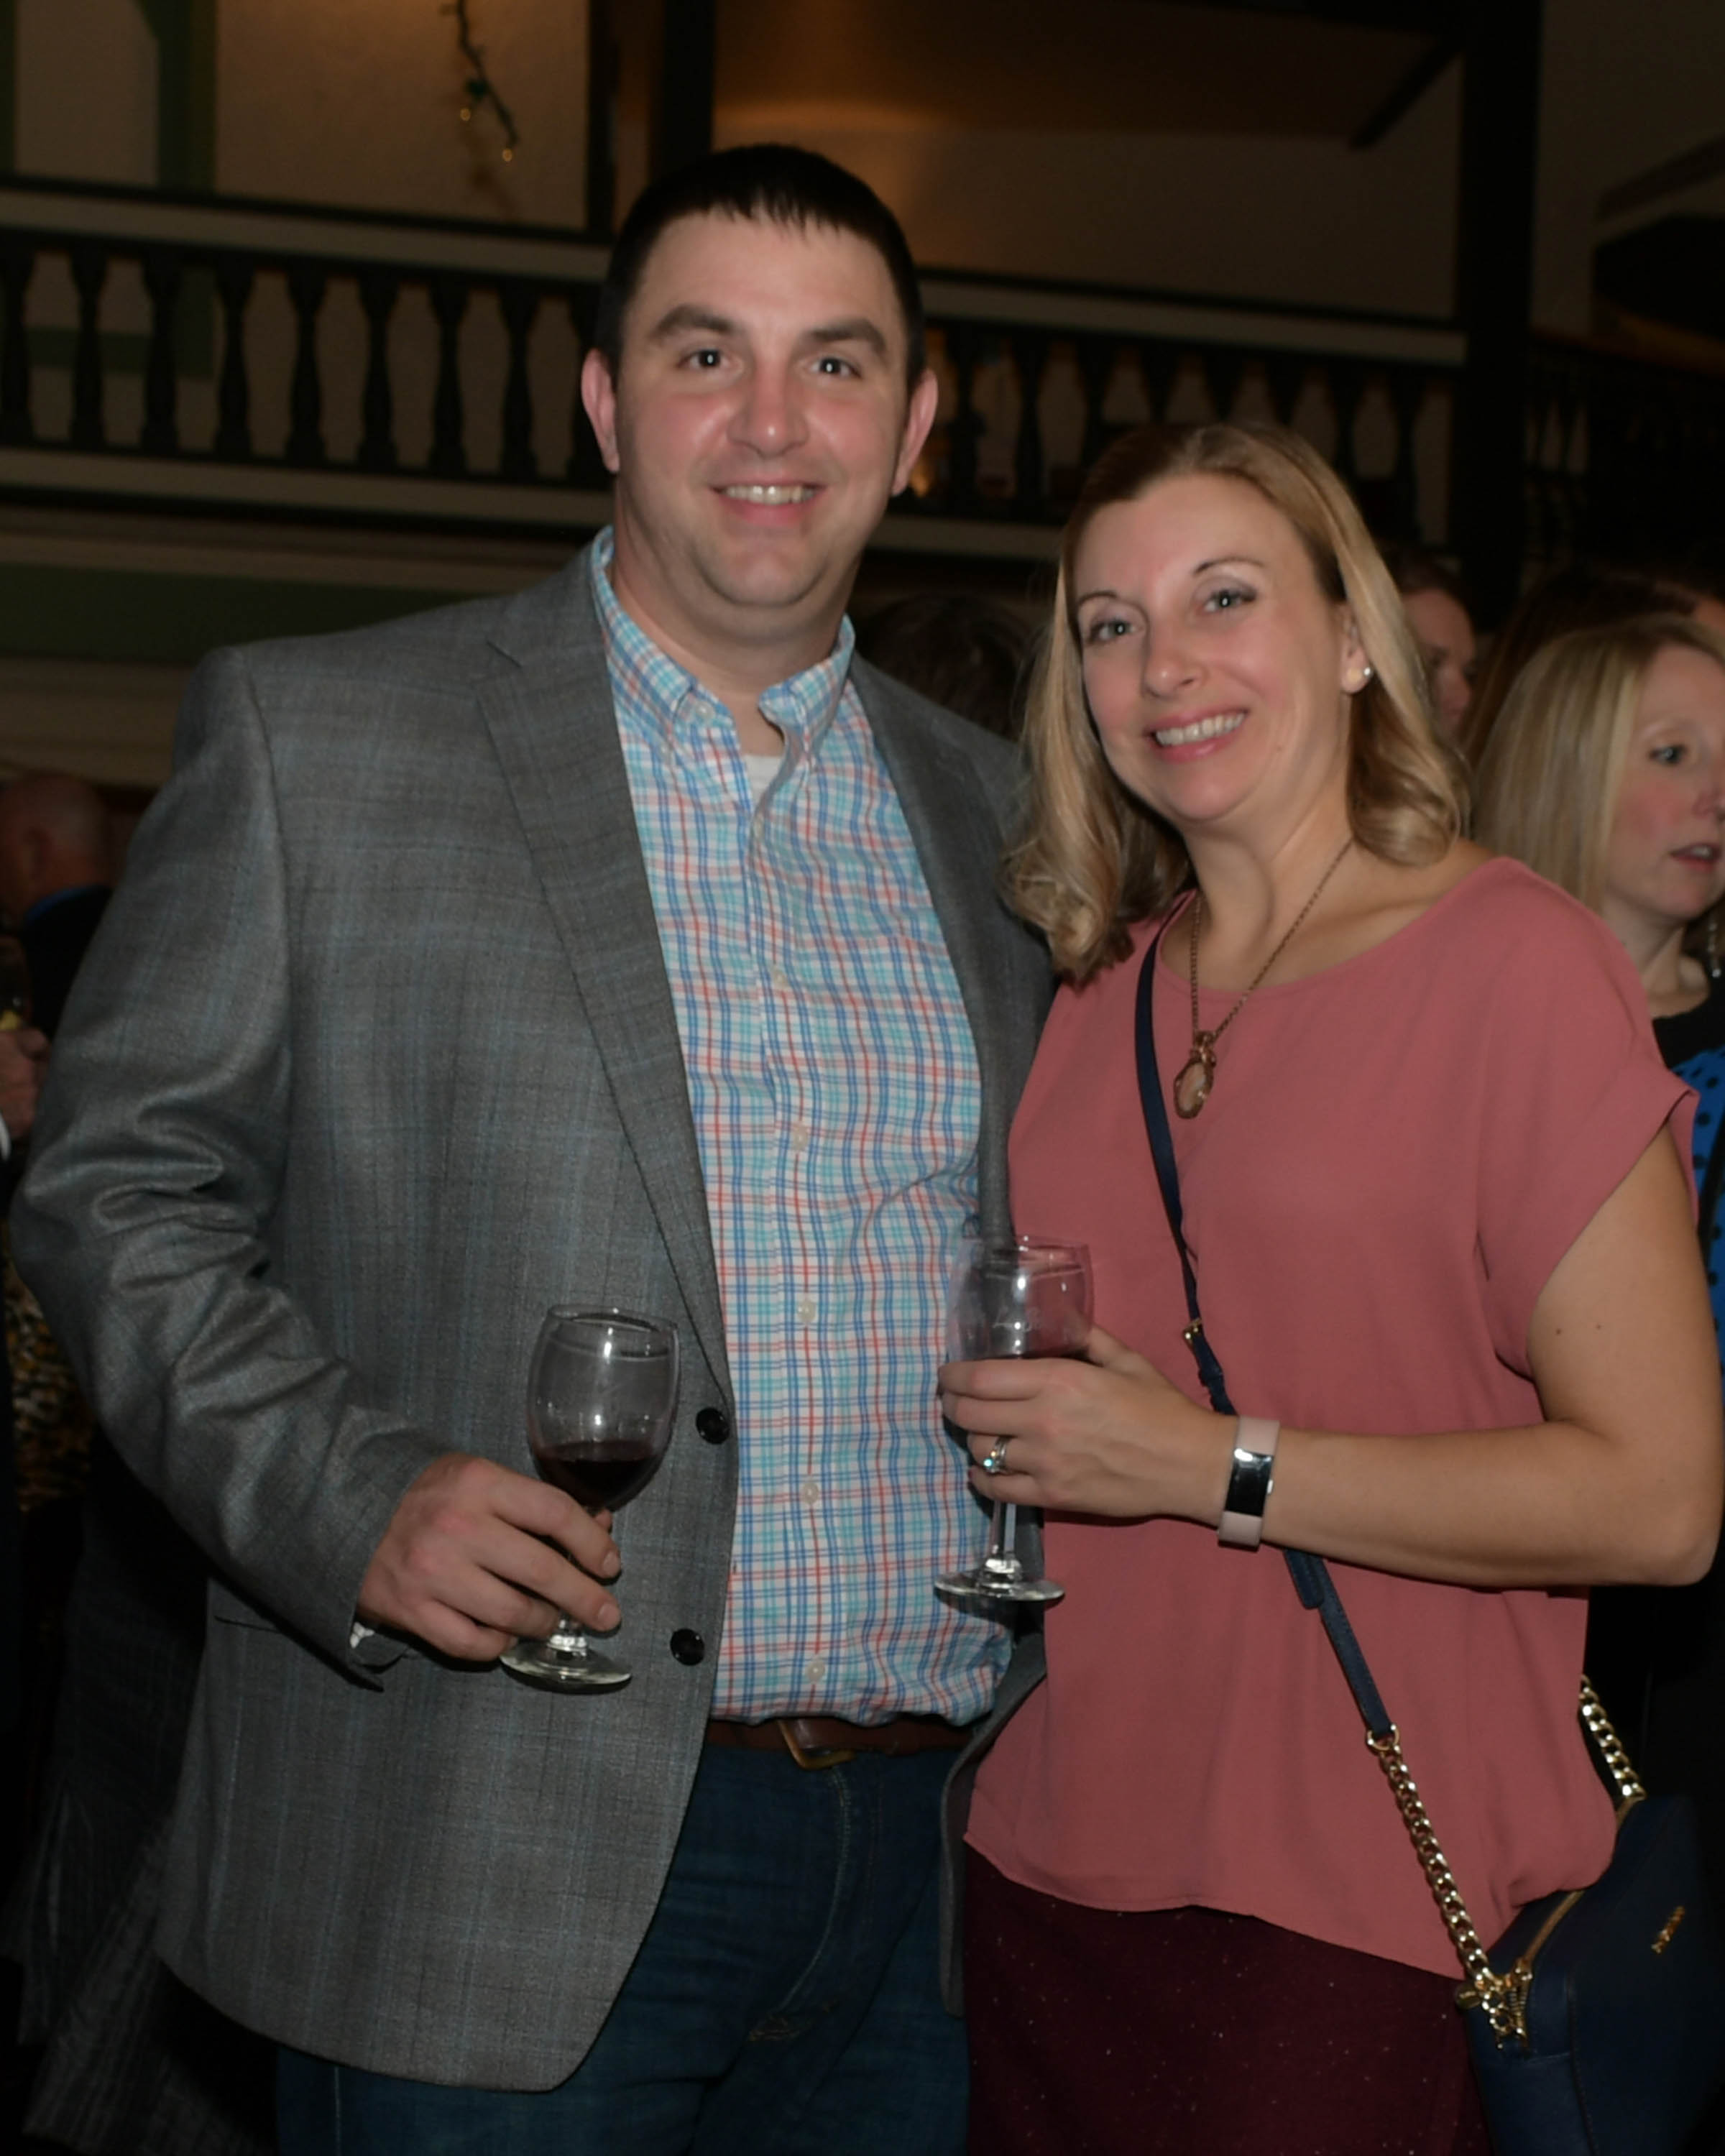 Vin Le Soir to benefit AIM Services, Inc. couple at event with wine